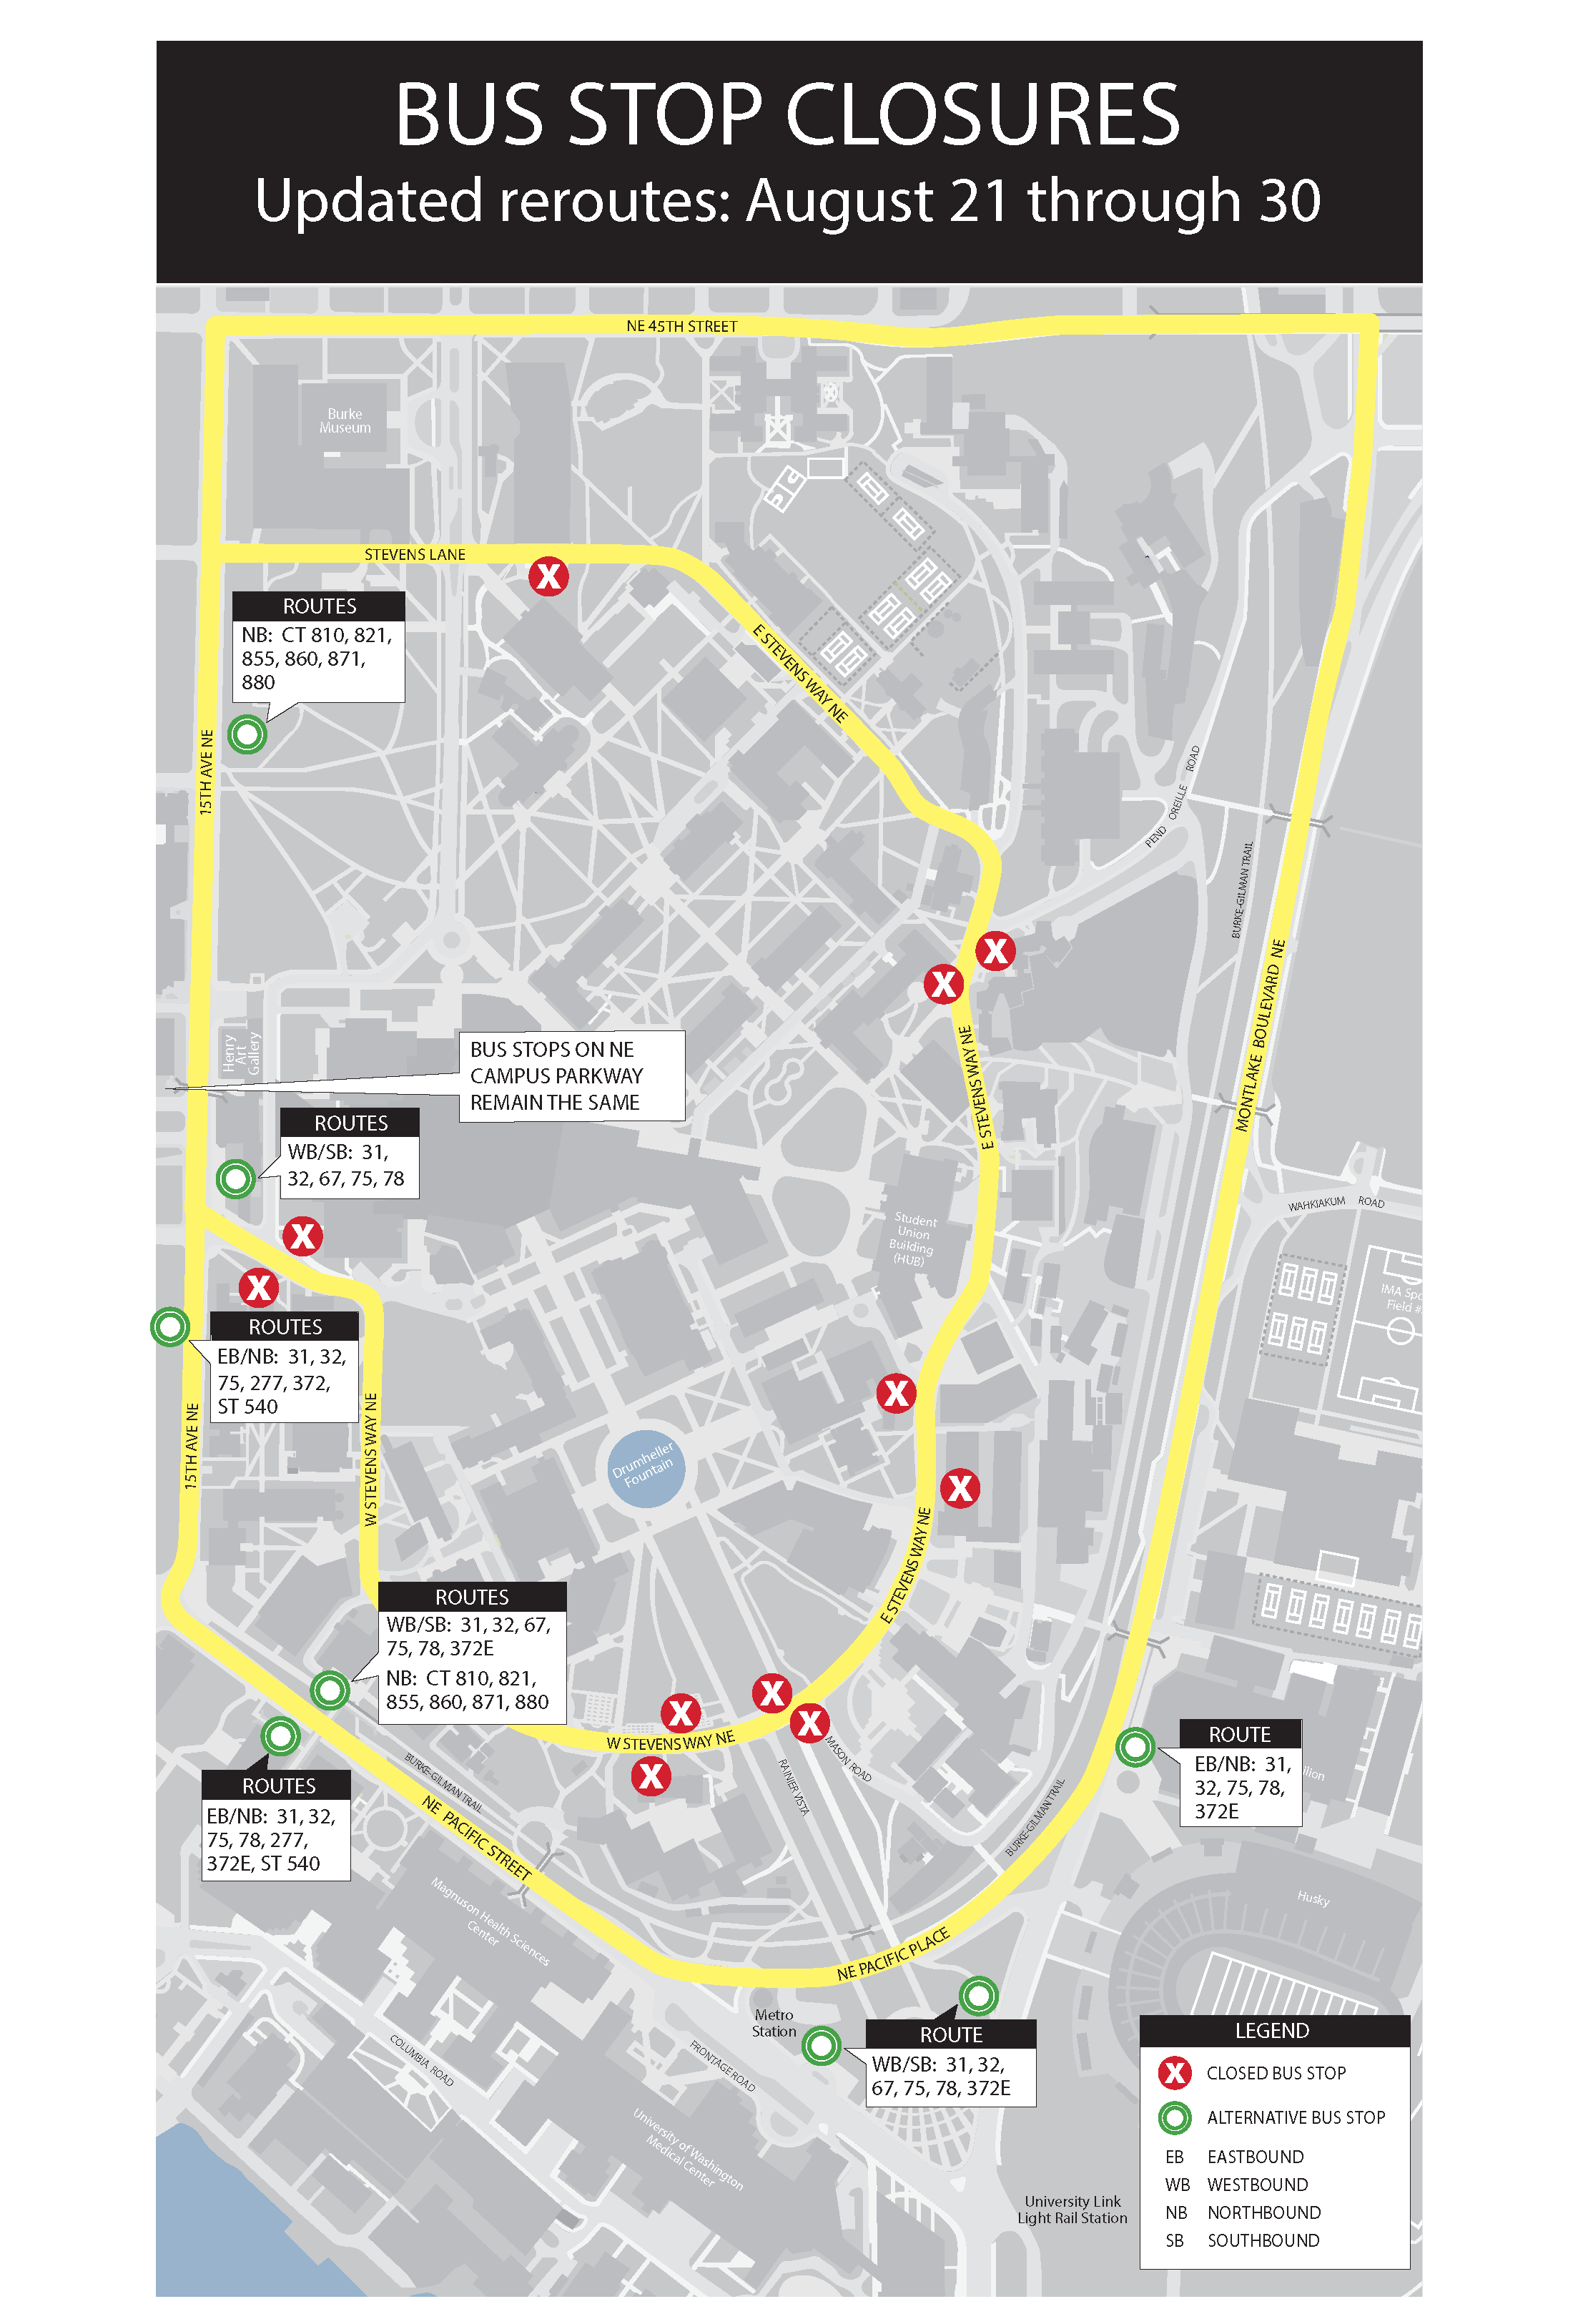 Metro bus reroute map showing bus stop closures